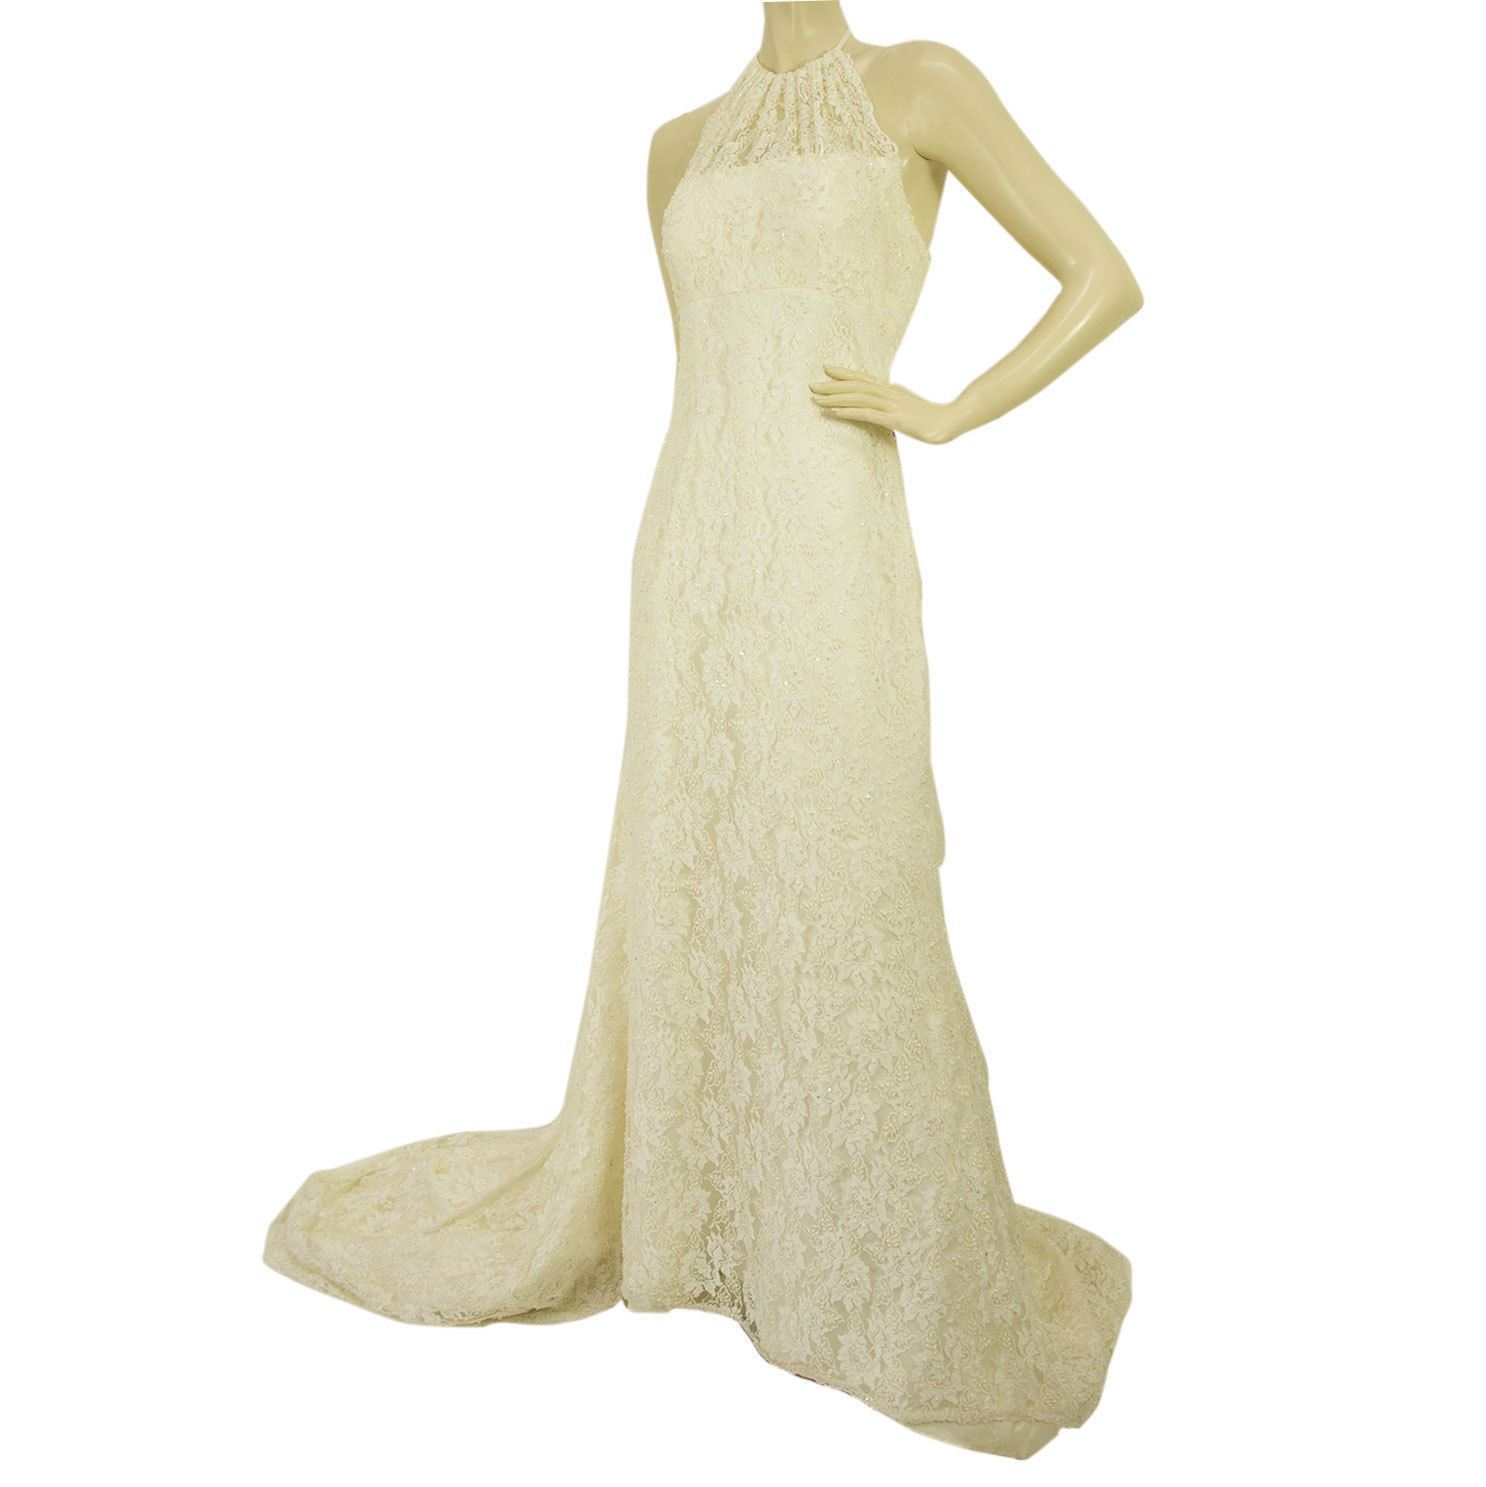 Pronovias White Beaded Floor Length Bridal Wedding Gown Halter Lace Dress 42 It